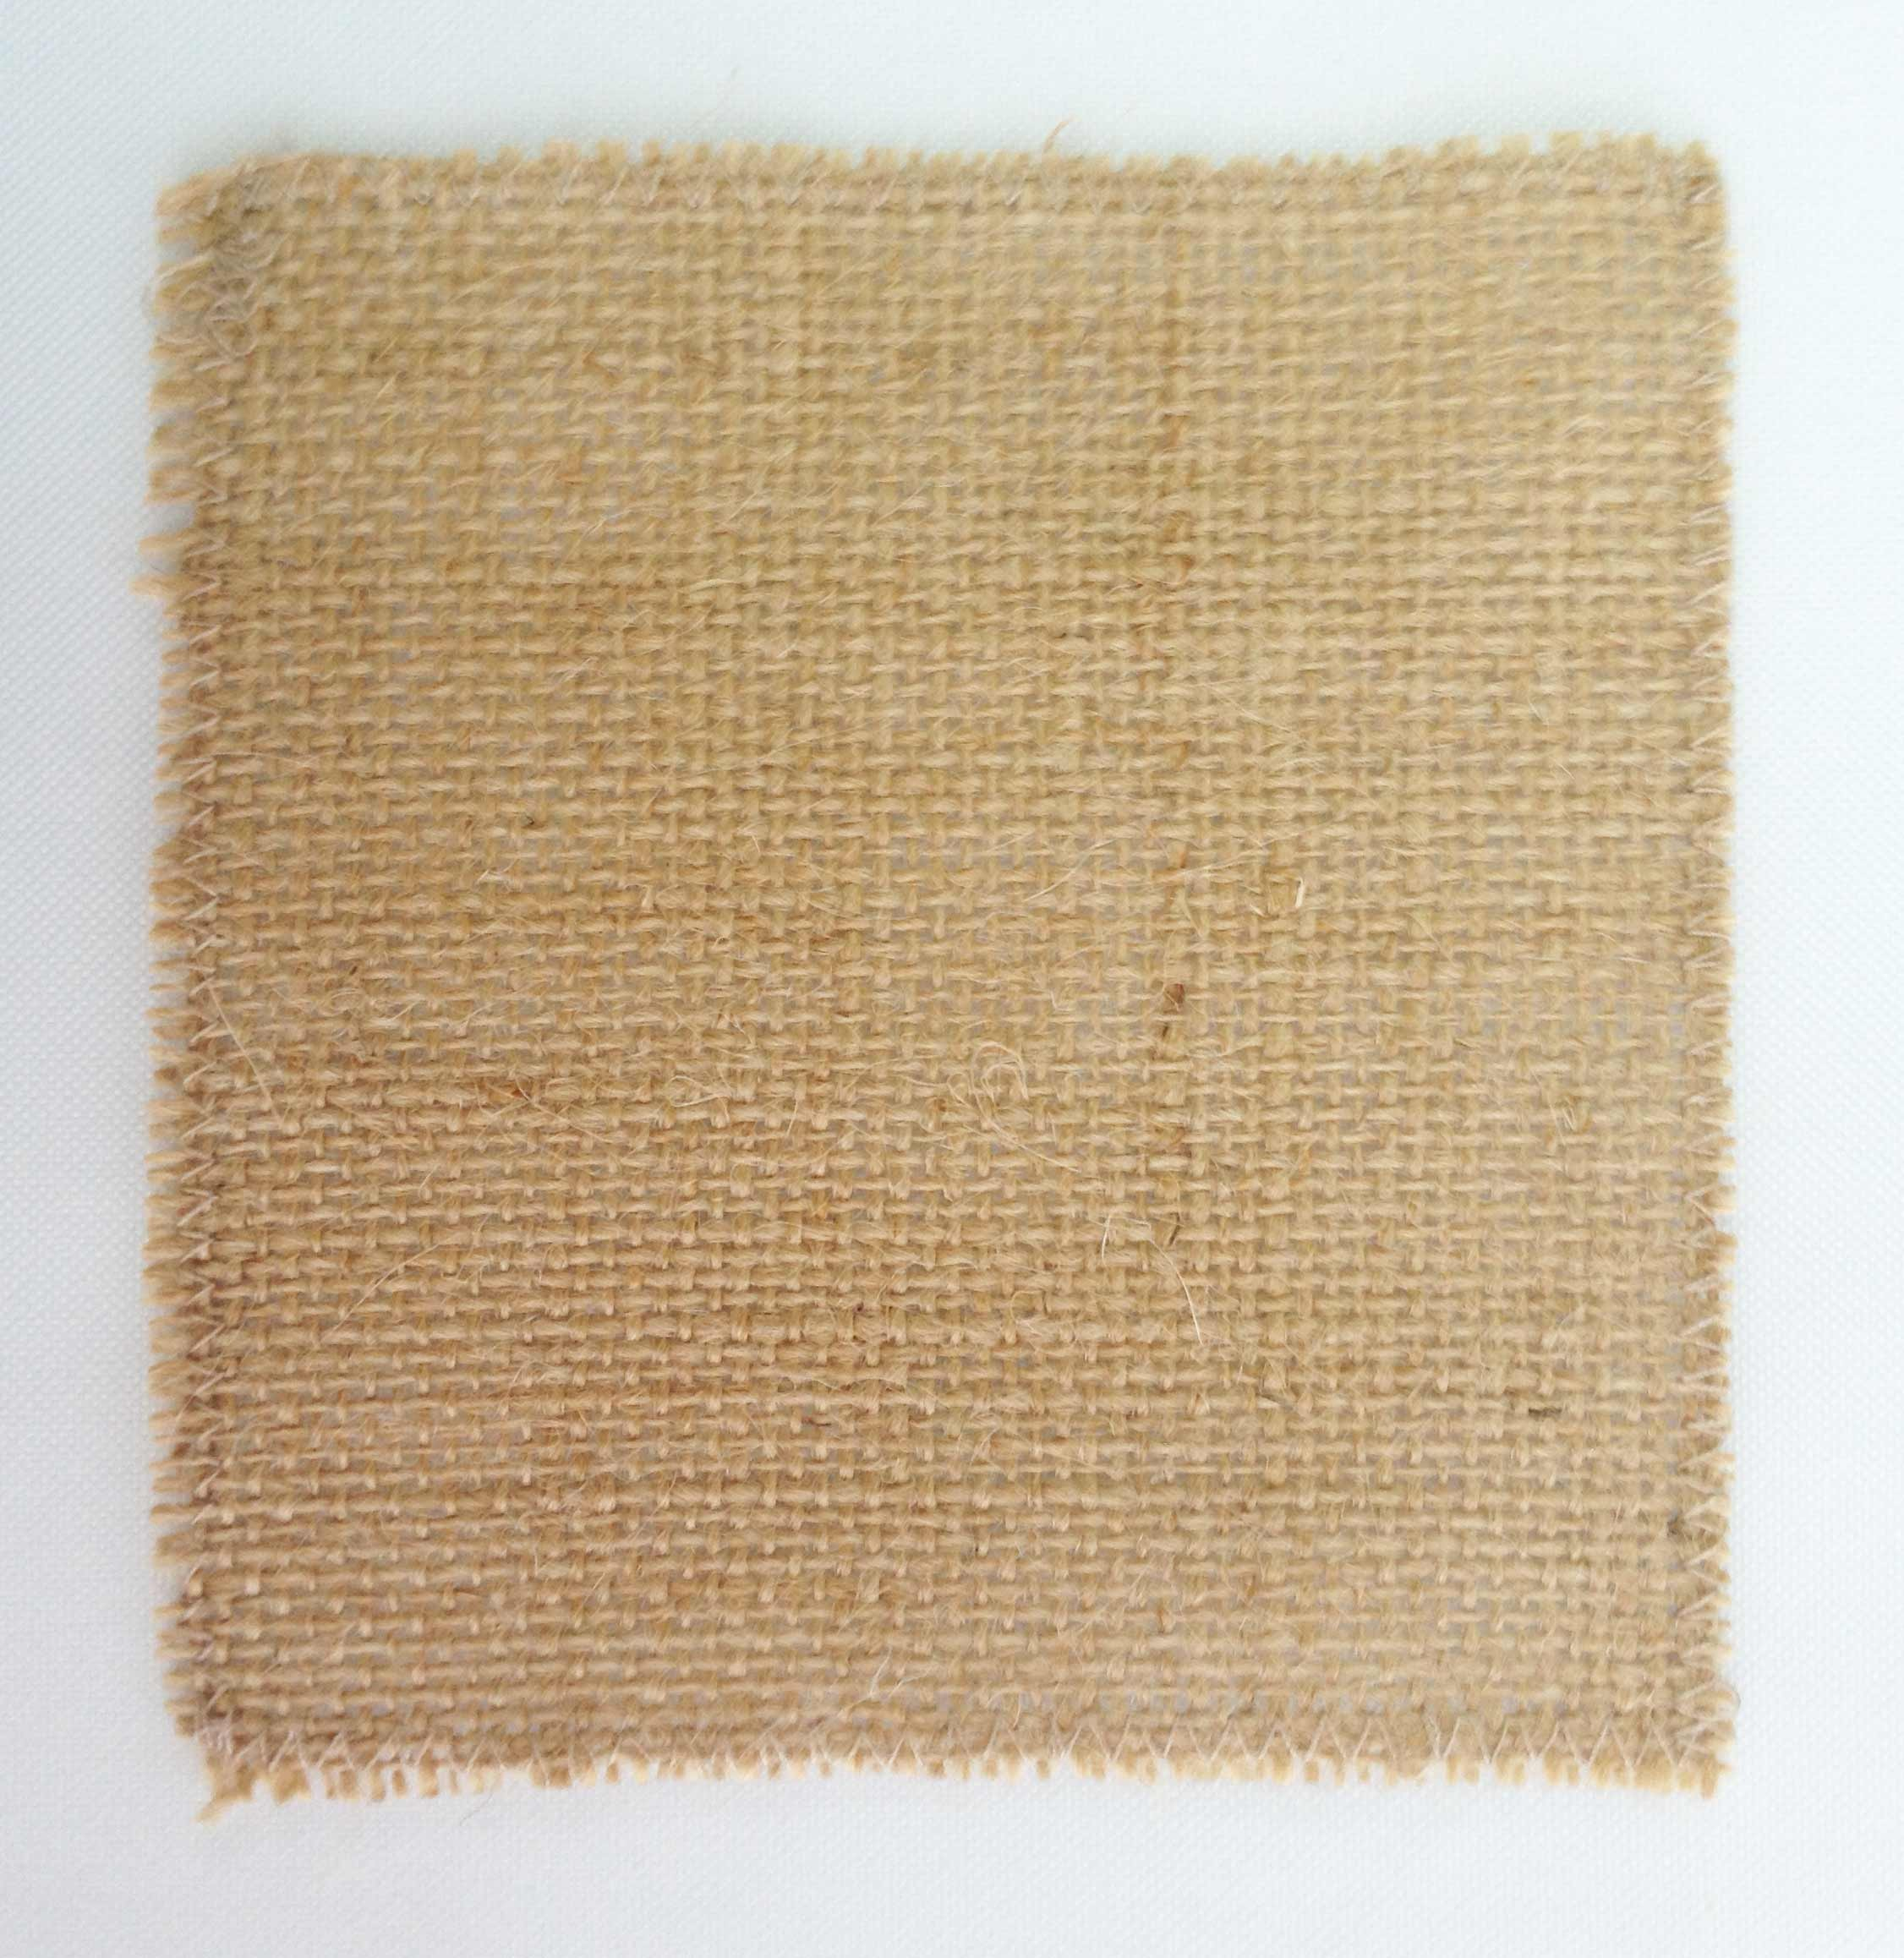 Burlap Coasters 5 X 5 With Finished Edges